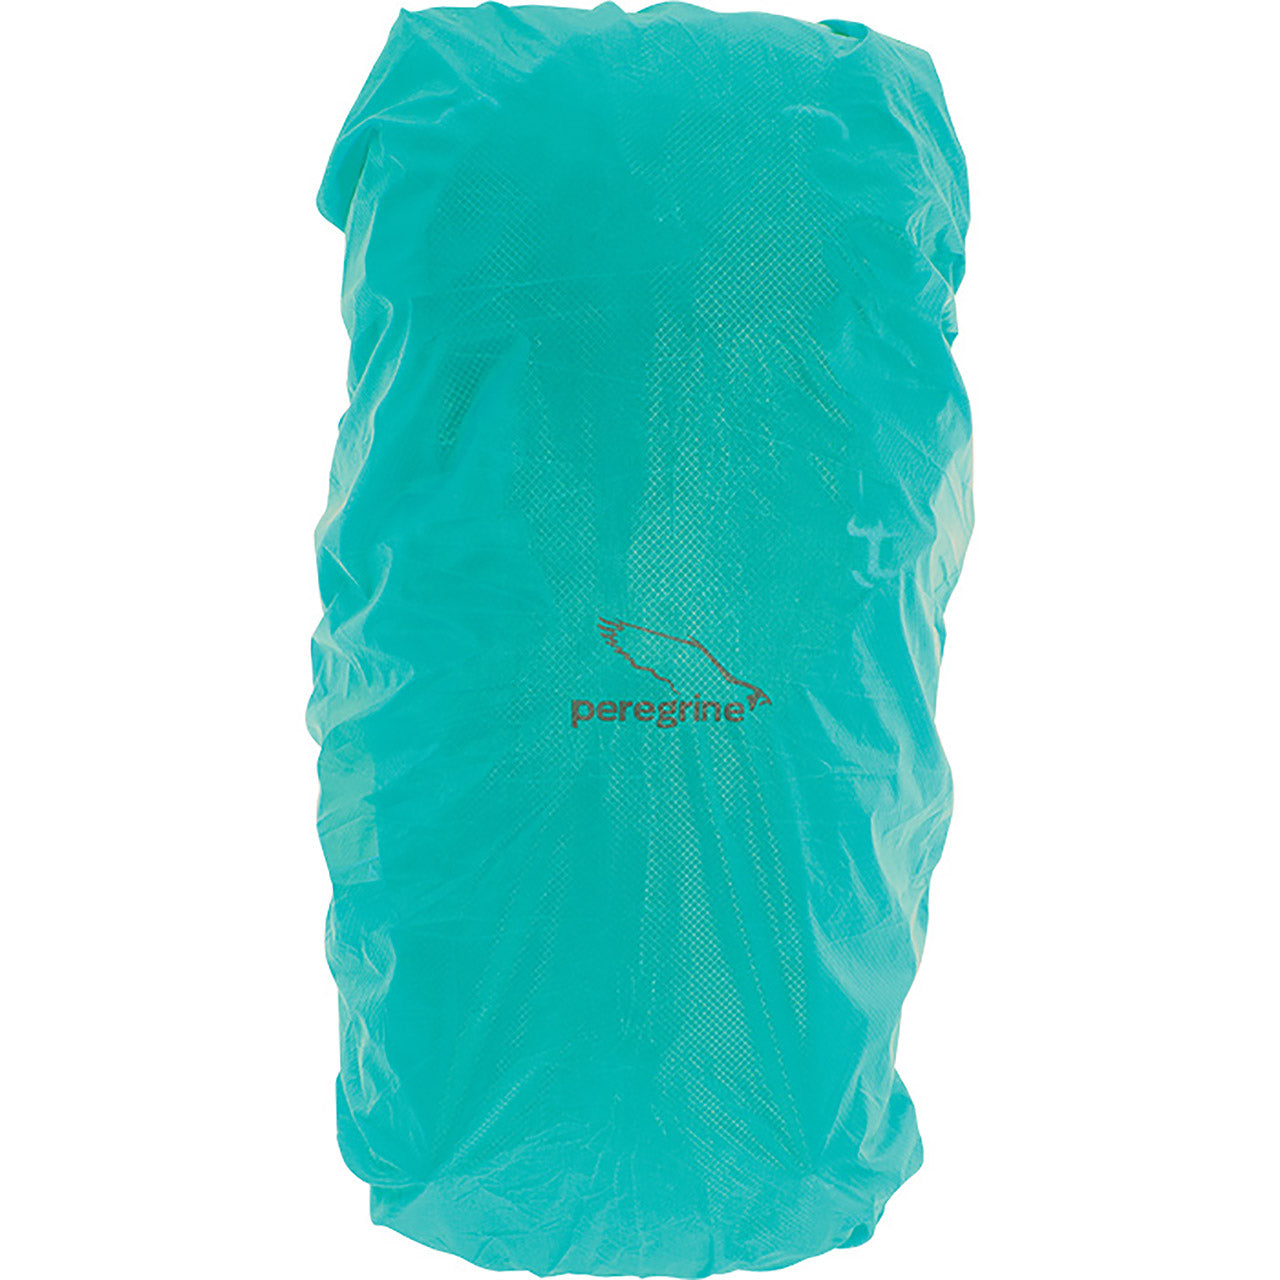 Peregrine Ultralight Backpack Rain Cover 25 to 40 Liter